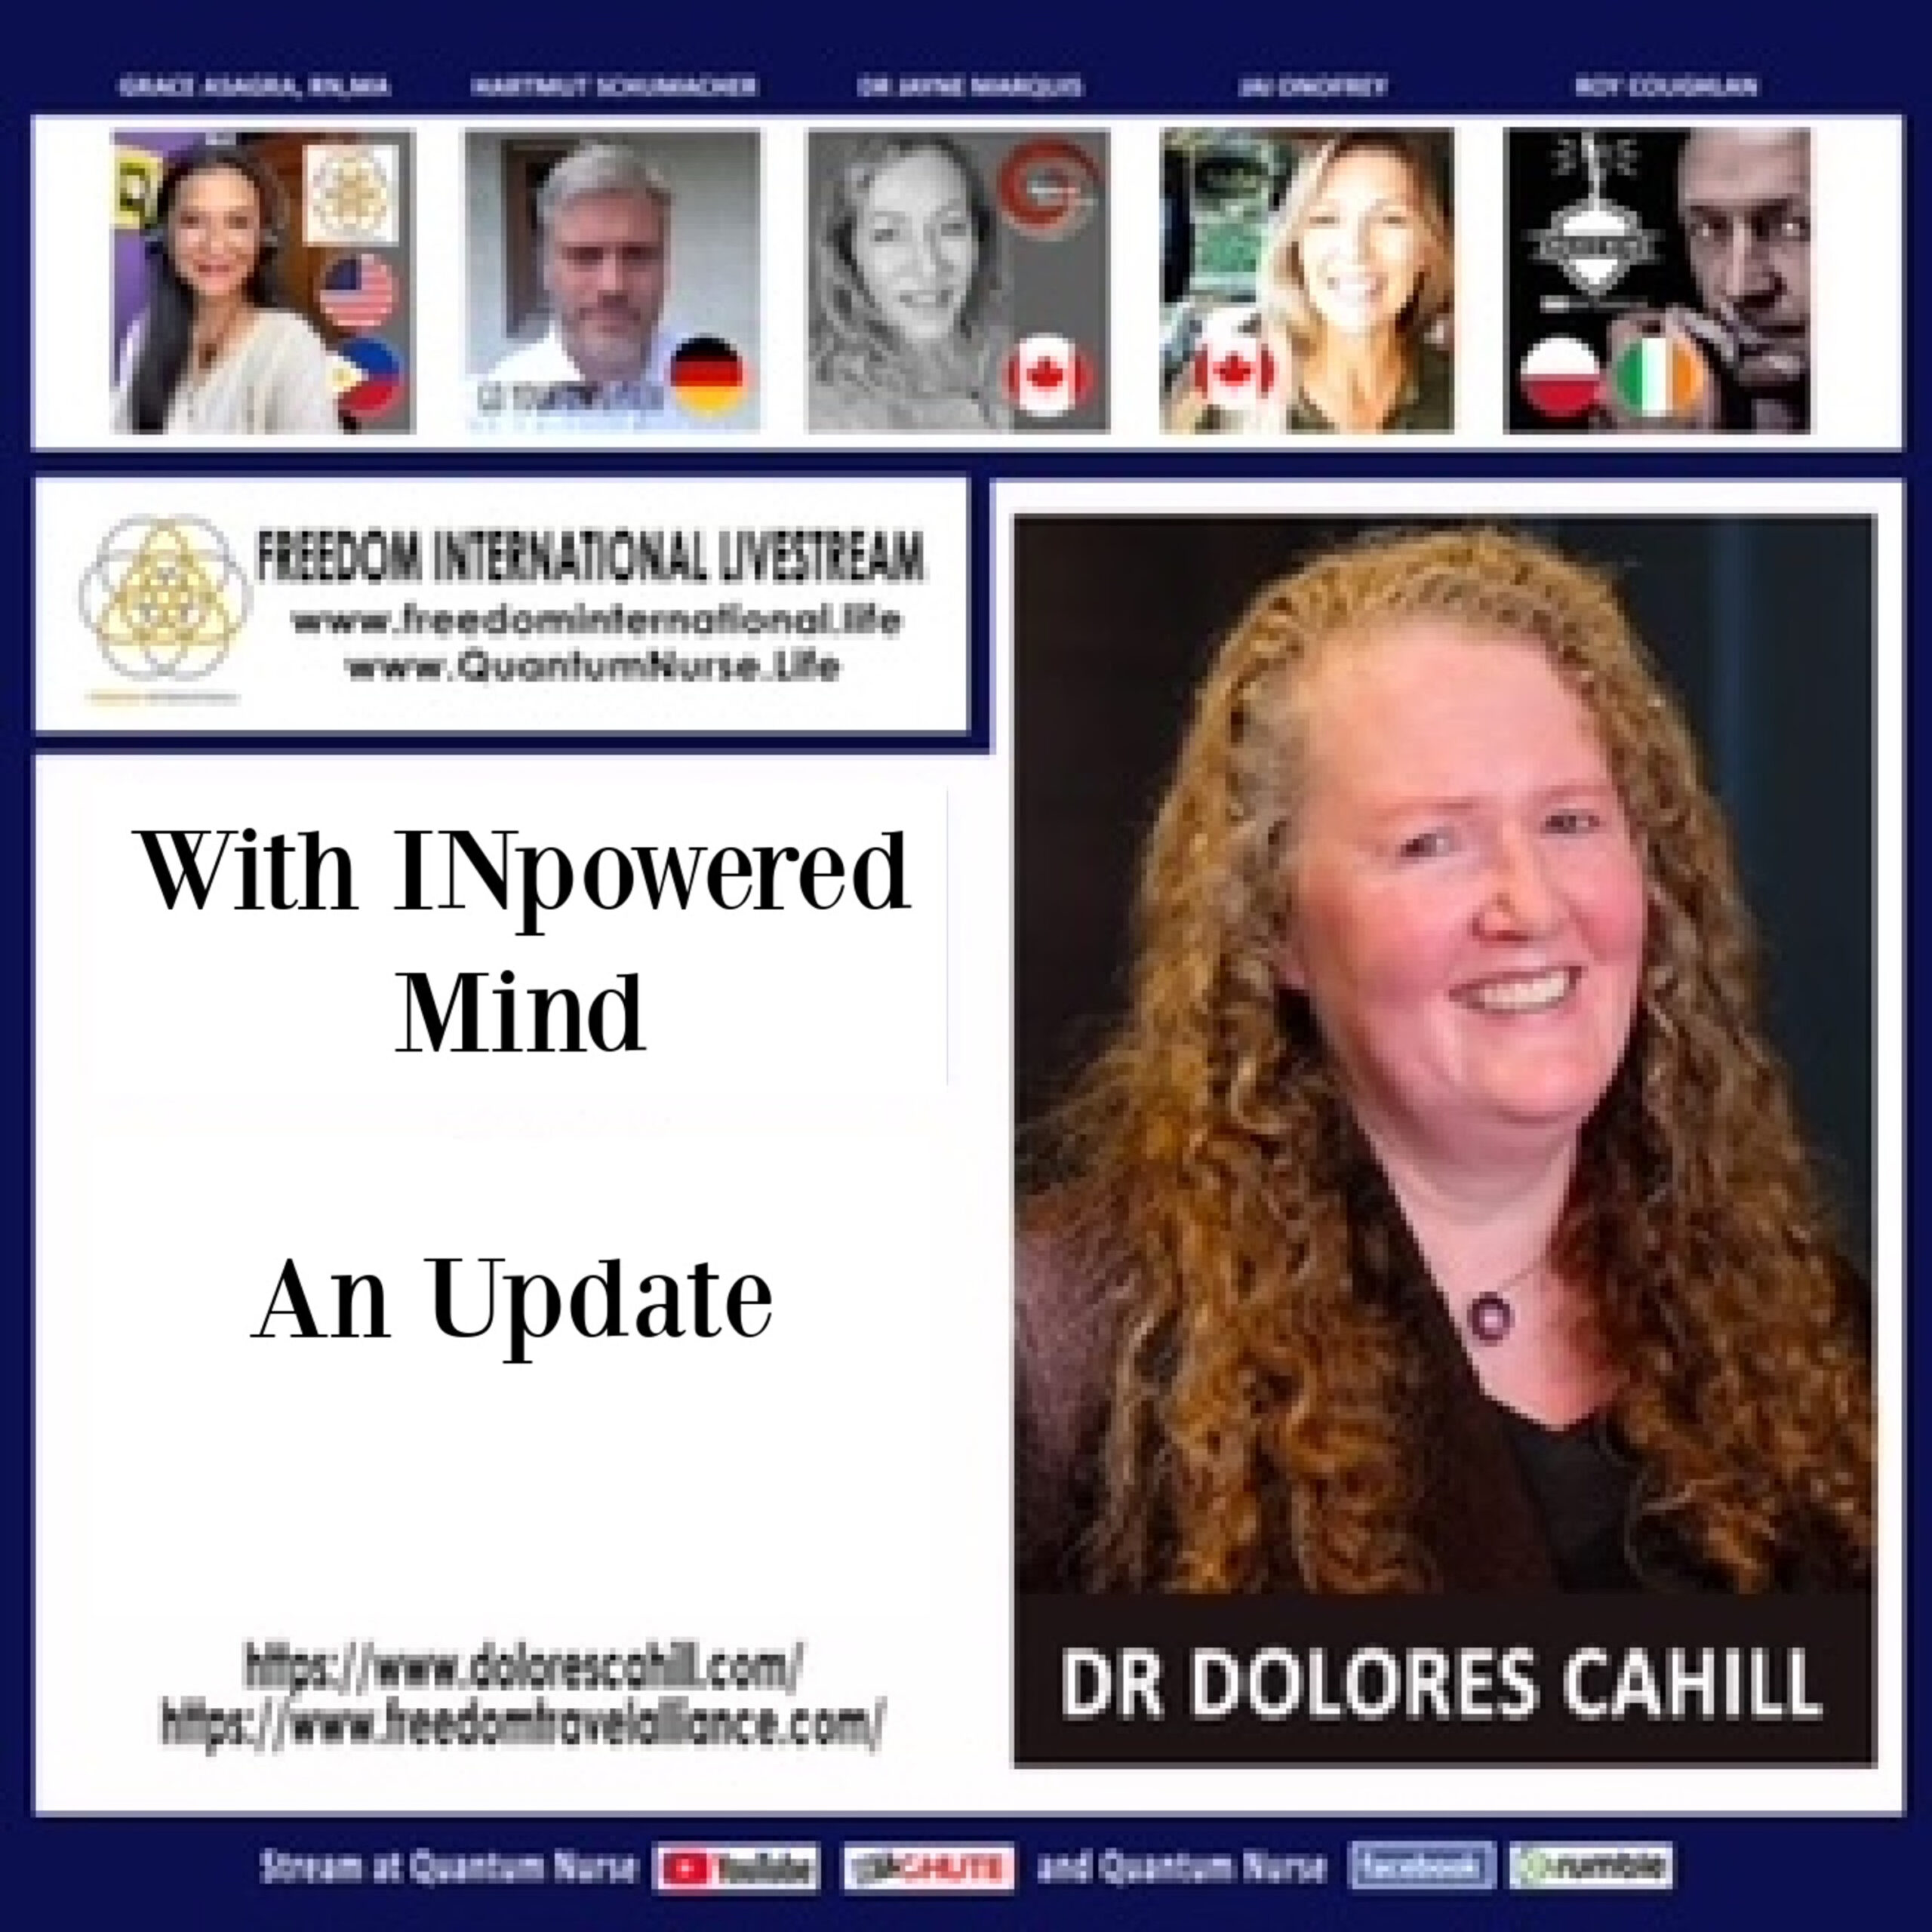 Dr. Deloris Cahill Ph.D. Molecular Biologist/Immunologist – An update – With the Freedom International Panel